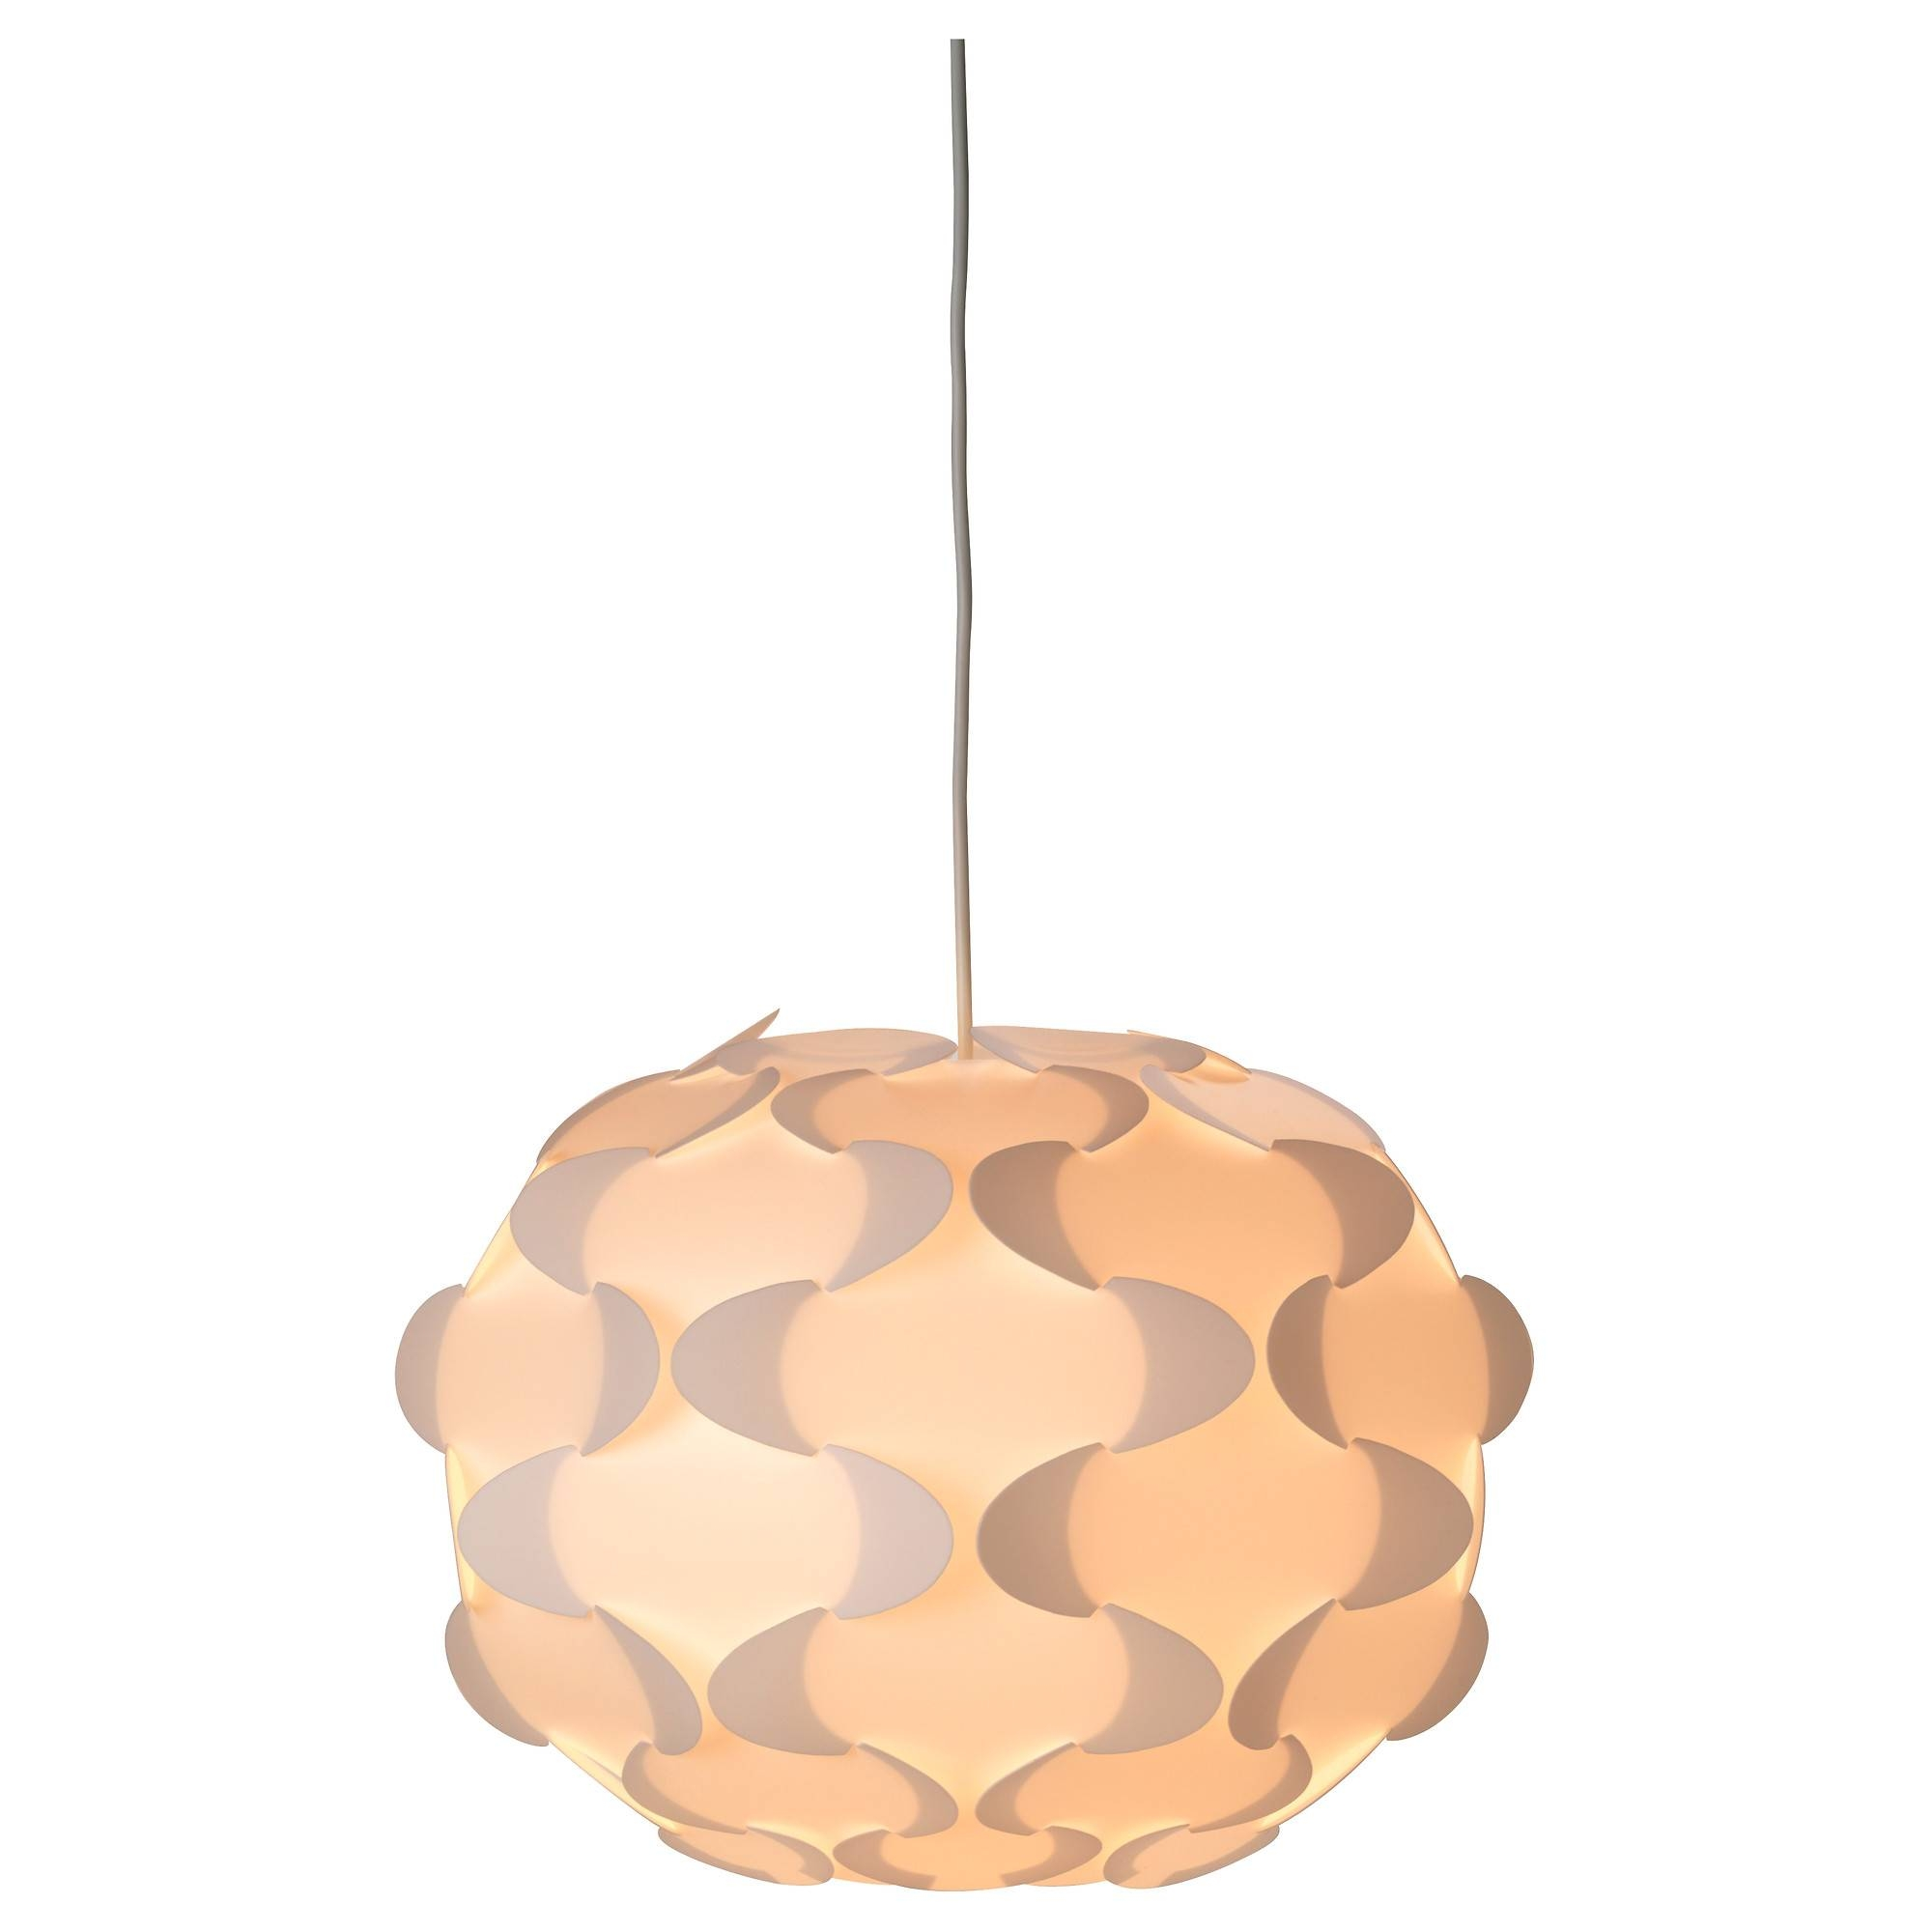 Pendant Lights & Lamp Shades - Ikea within Ikea Pendant Lights (Image 11 of 15)